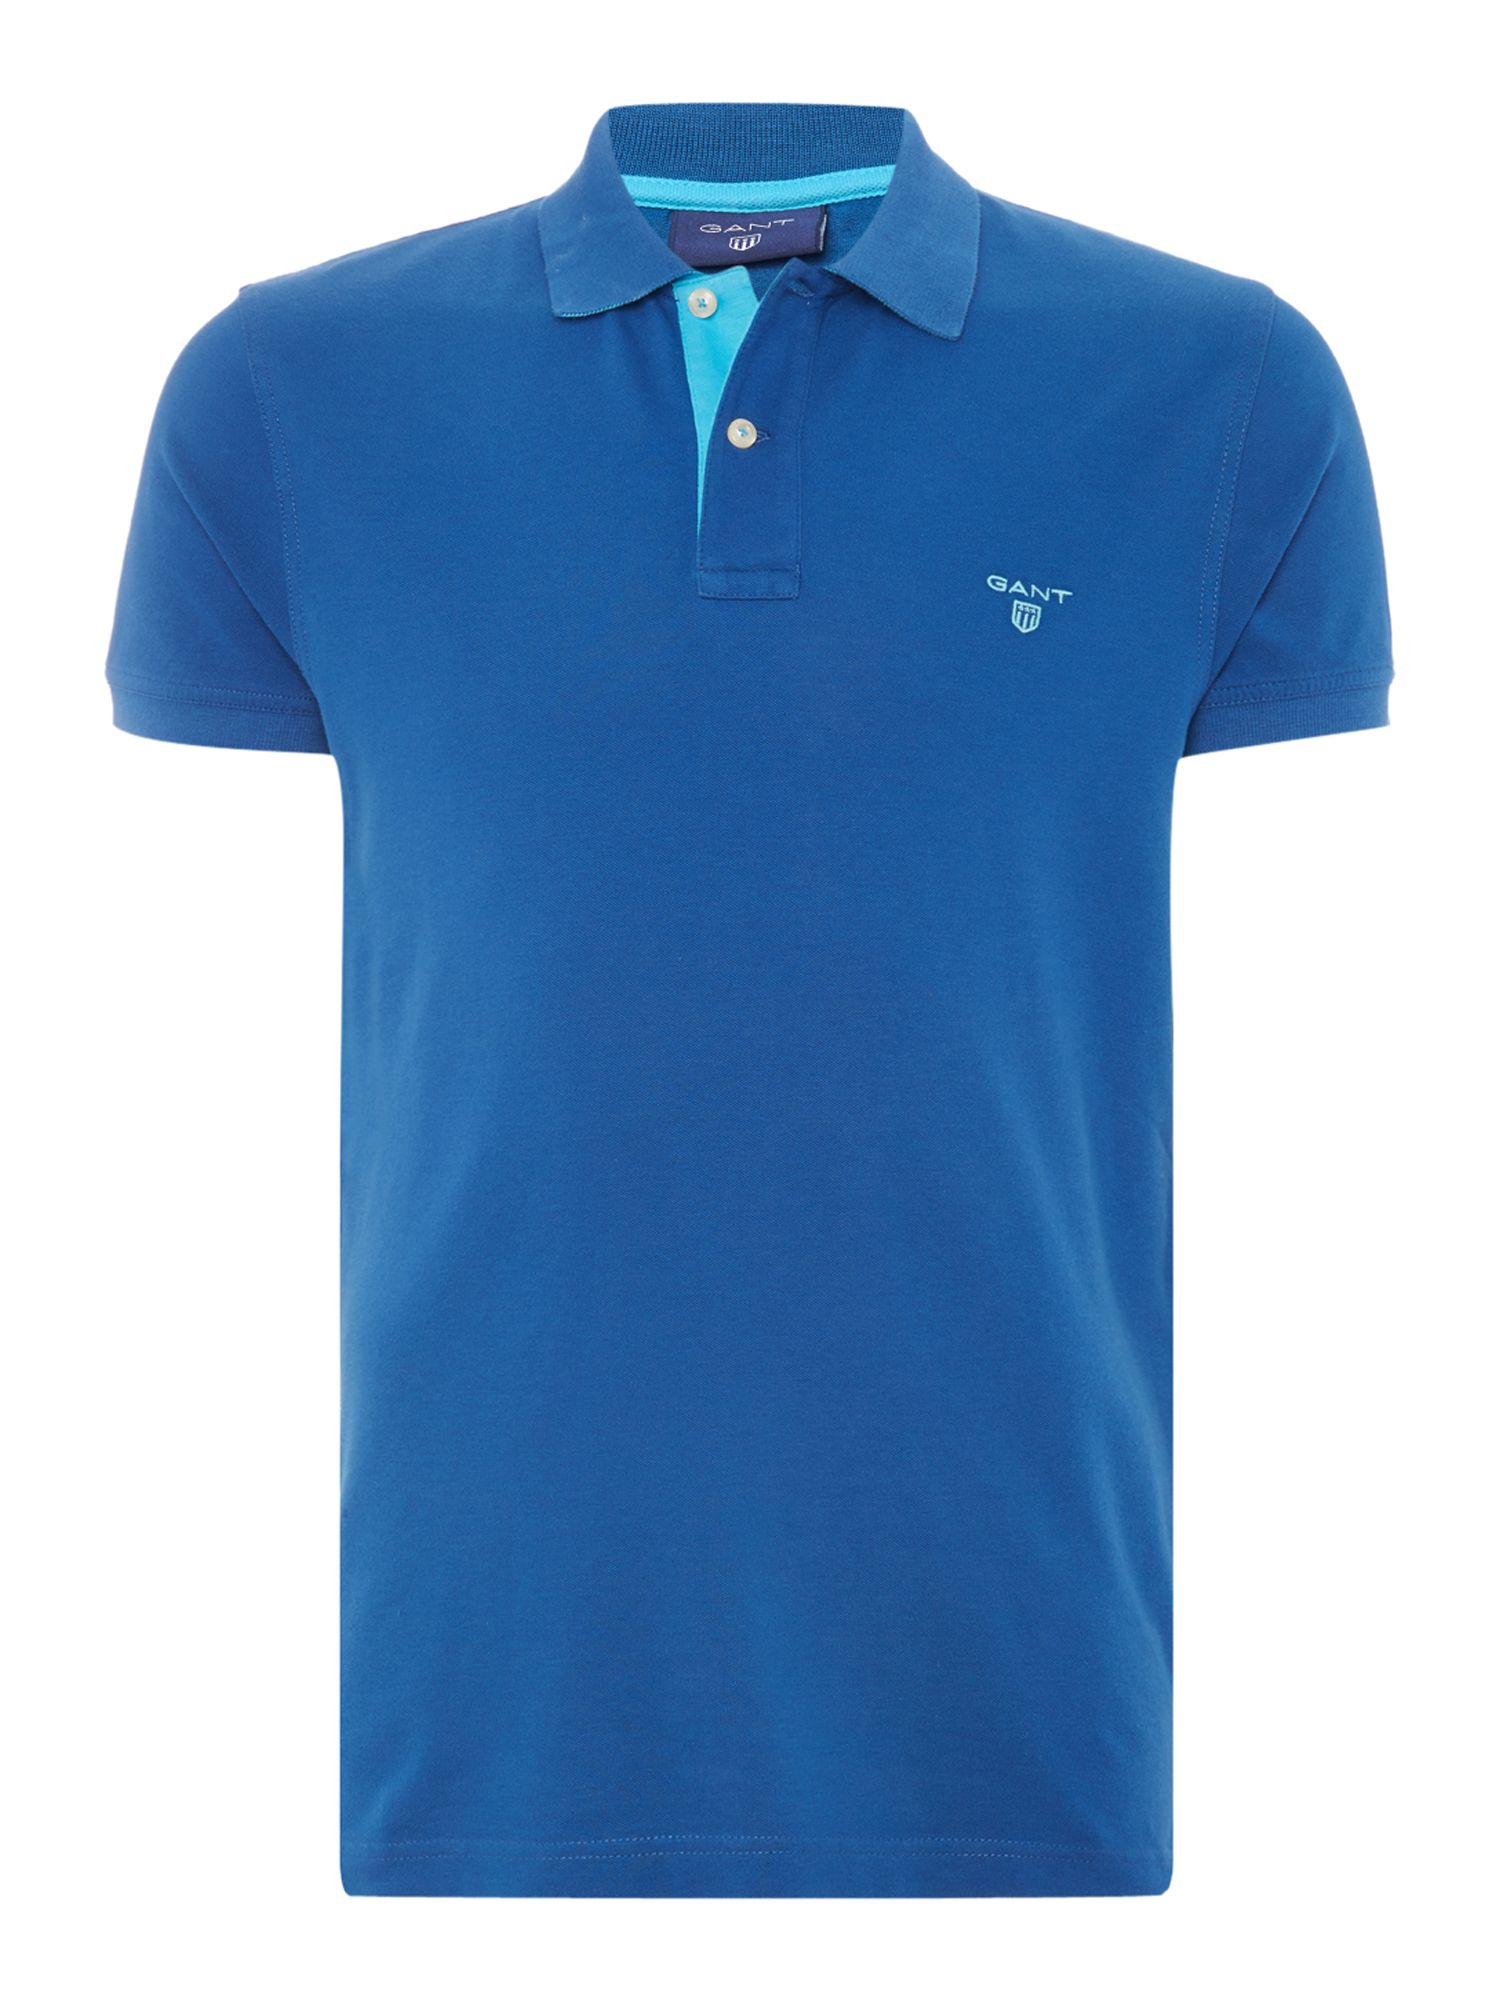 Gant Contrast Collar Polo Shirt In Blue For Men Lyst